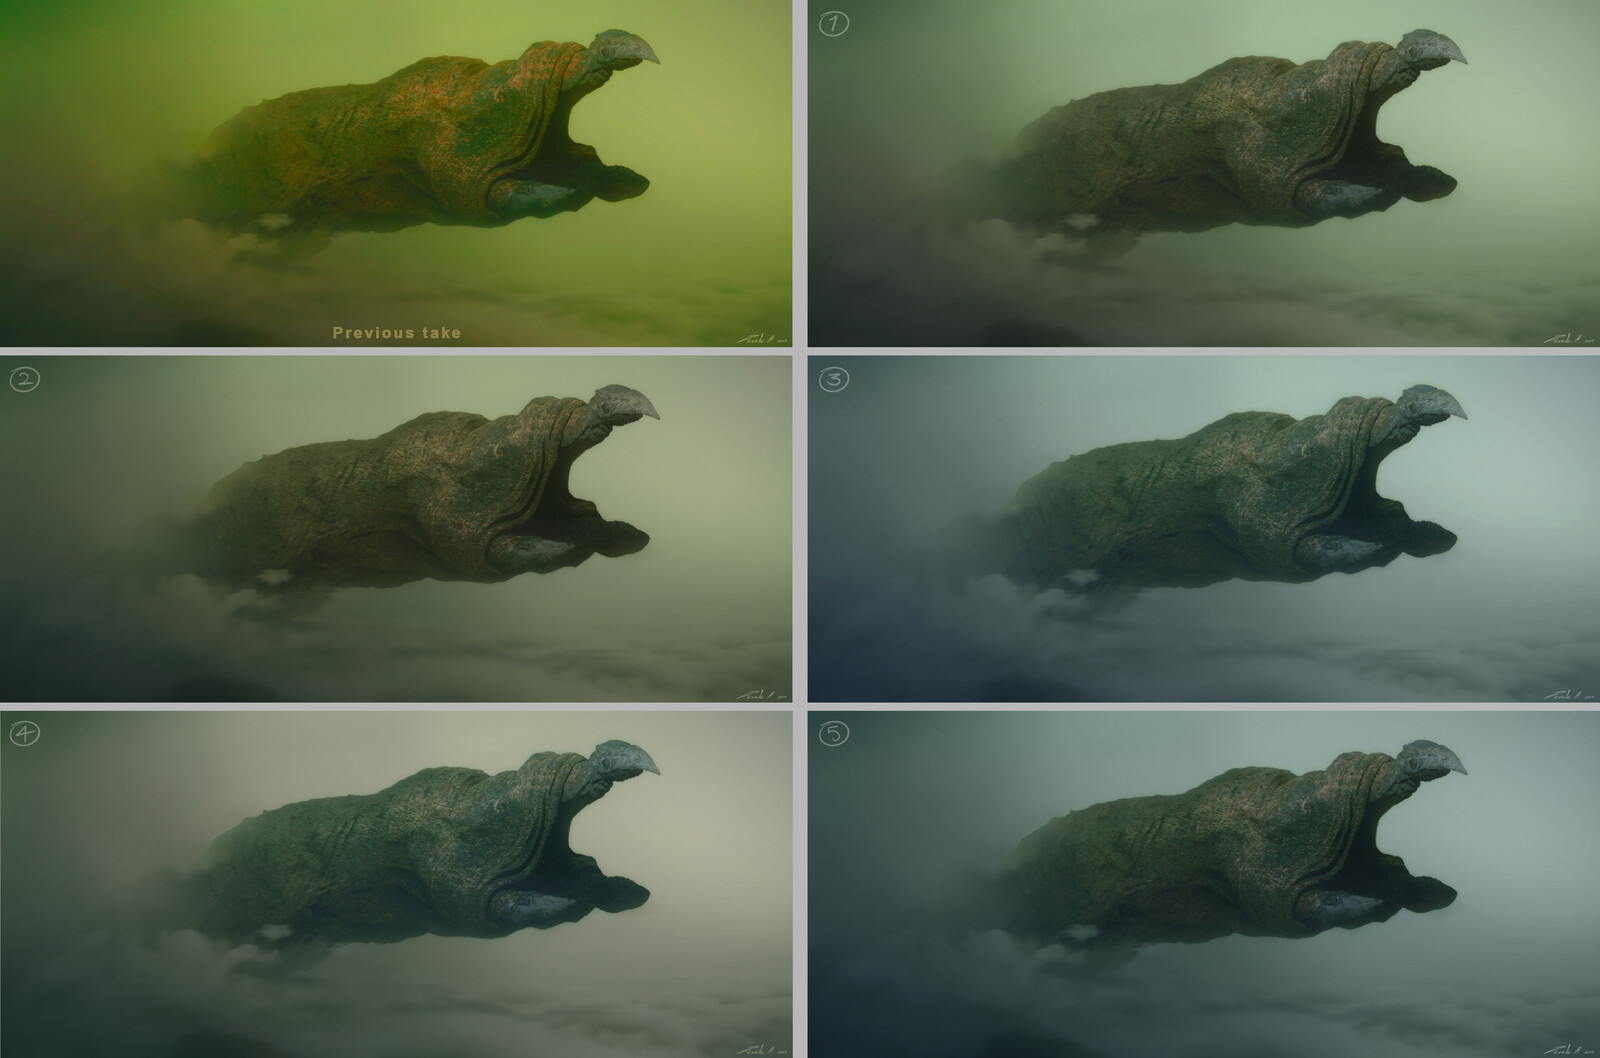 Color and saturation variations for the fog world. The monster's color and textures had to be dialed depending on the color scheme of the environment.